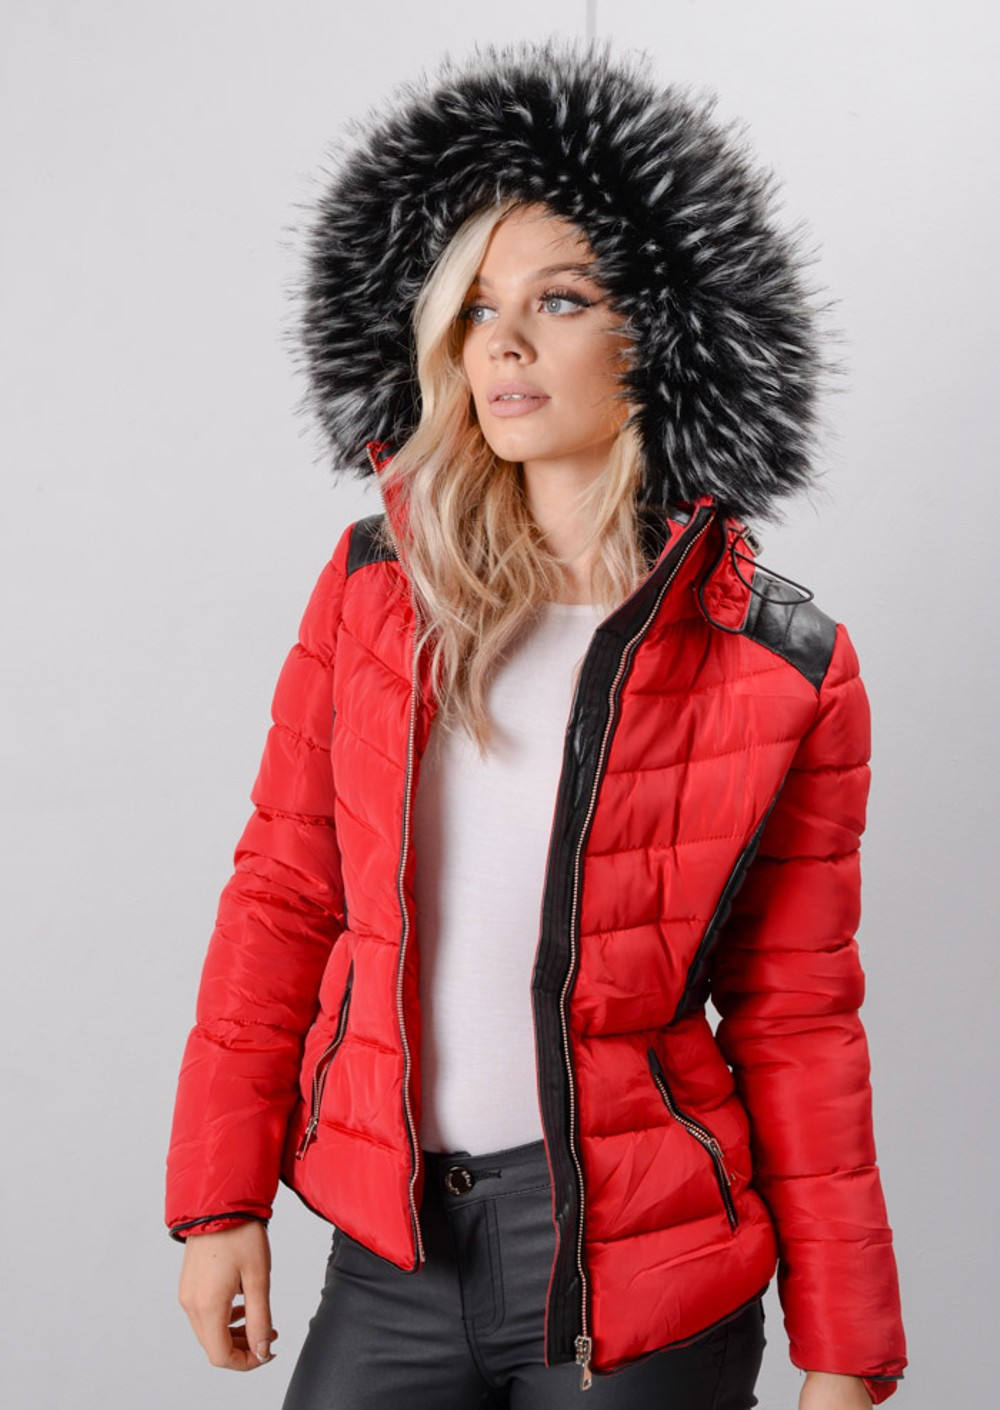 Women's Fur Hooded Coats | Quilted Jackets | Hood Parka Lily Lulu